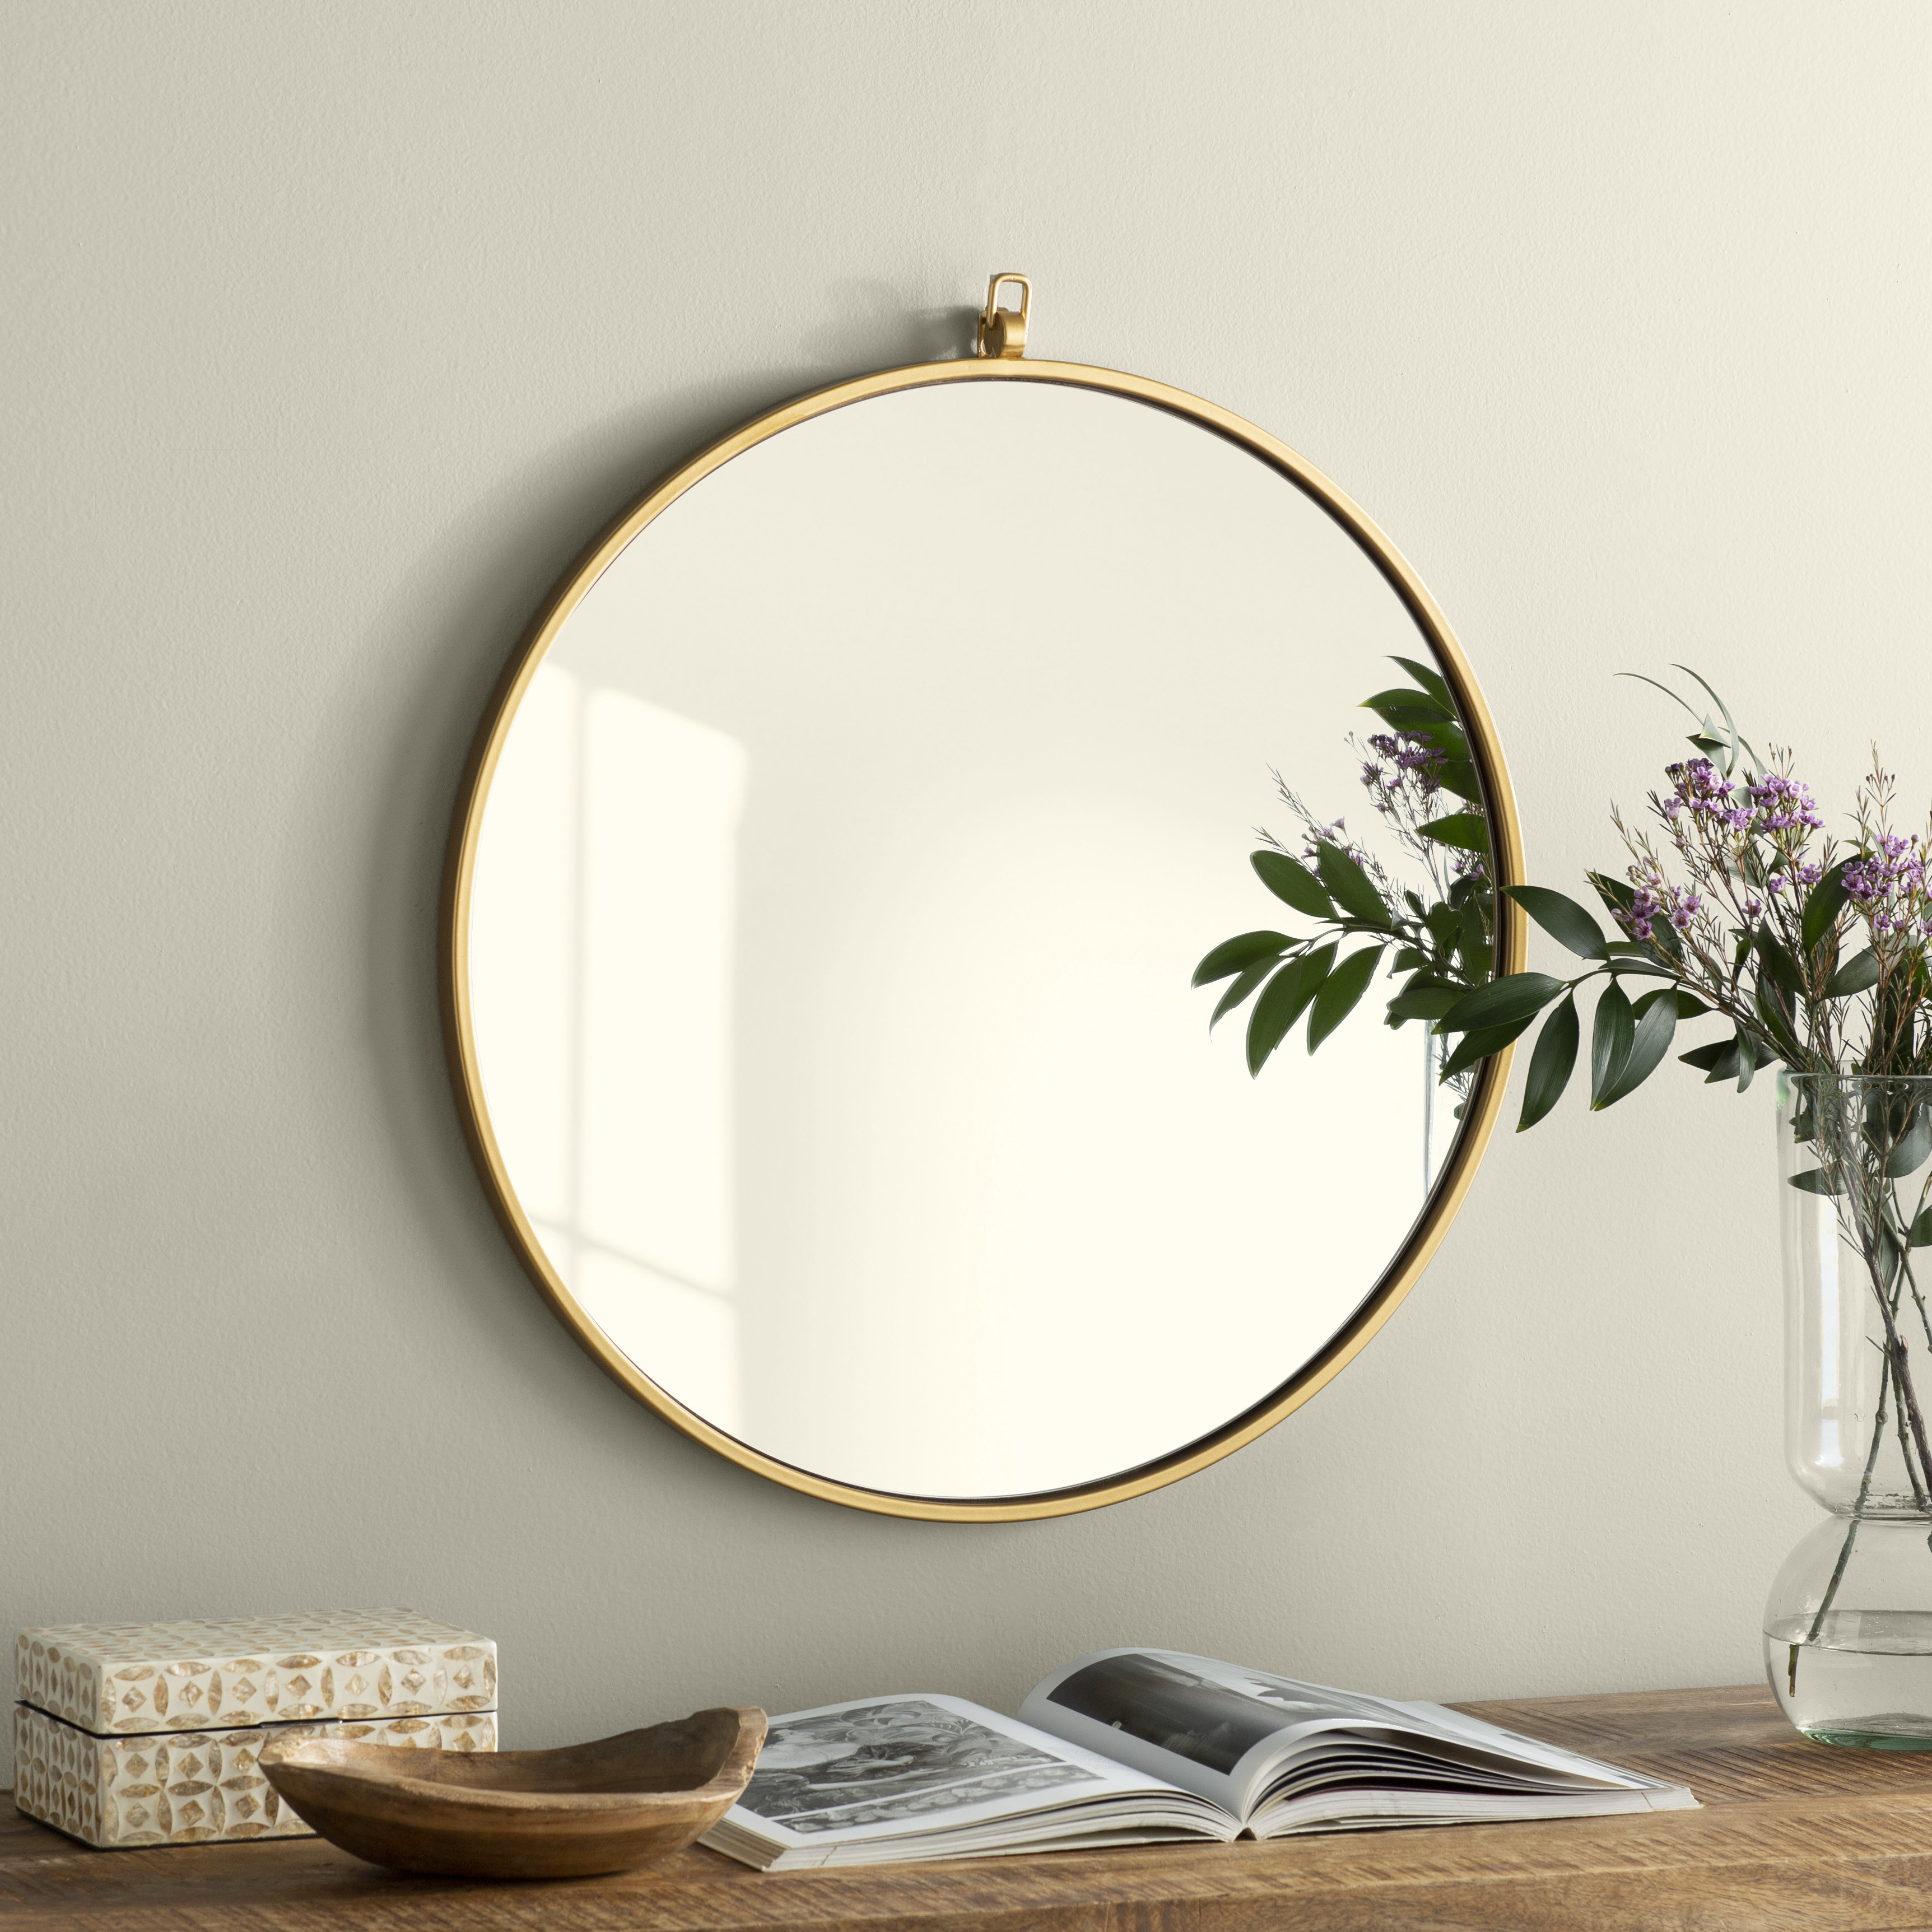 Joss & Main Essentials Accent Mirror Intended For Matthias Round Accent Mirrors (View 7 of 20)